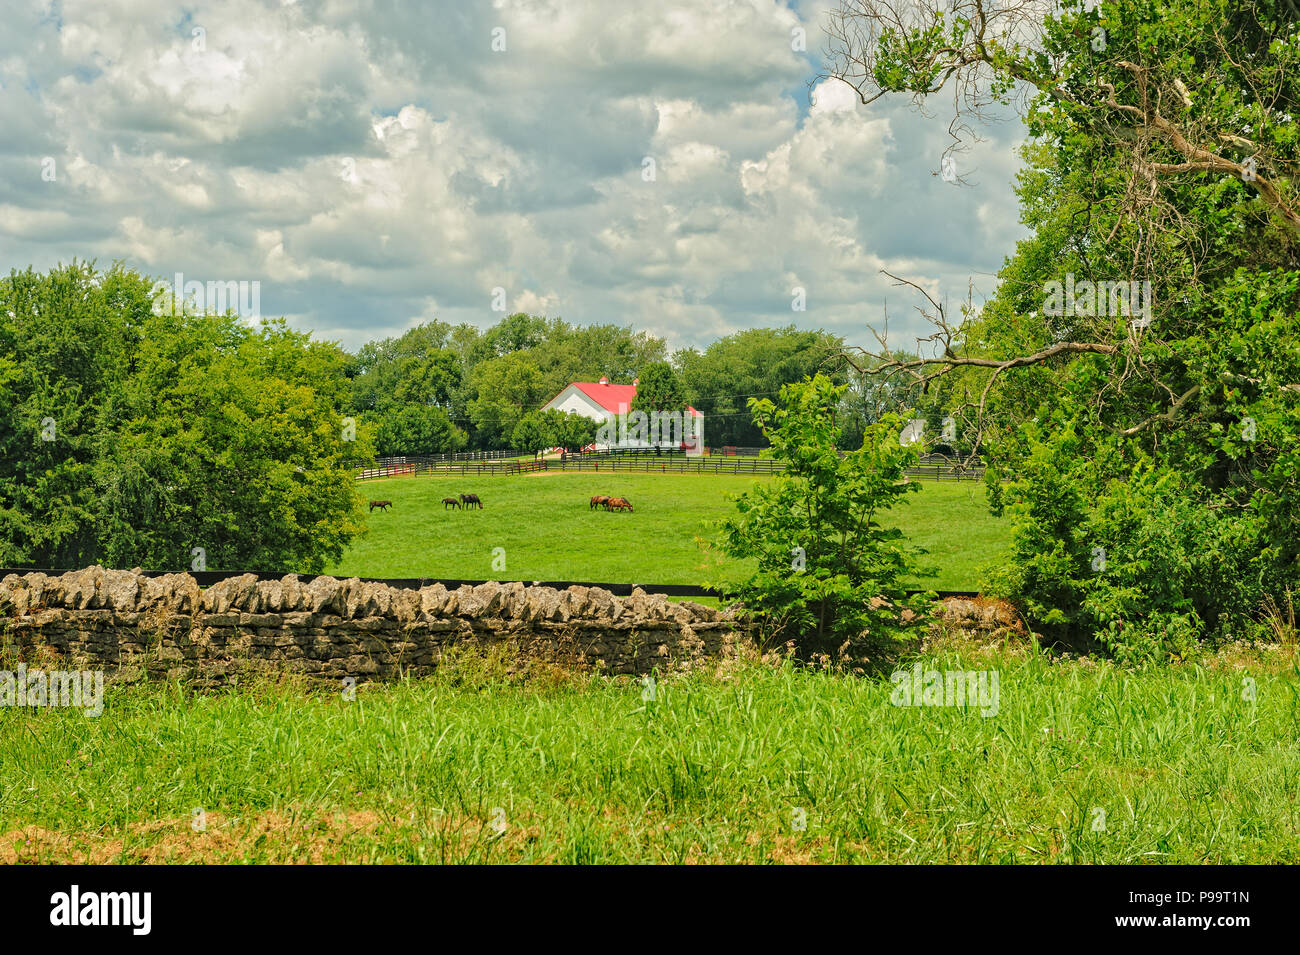 Kentucky horse farm - Stock Image